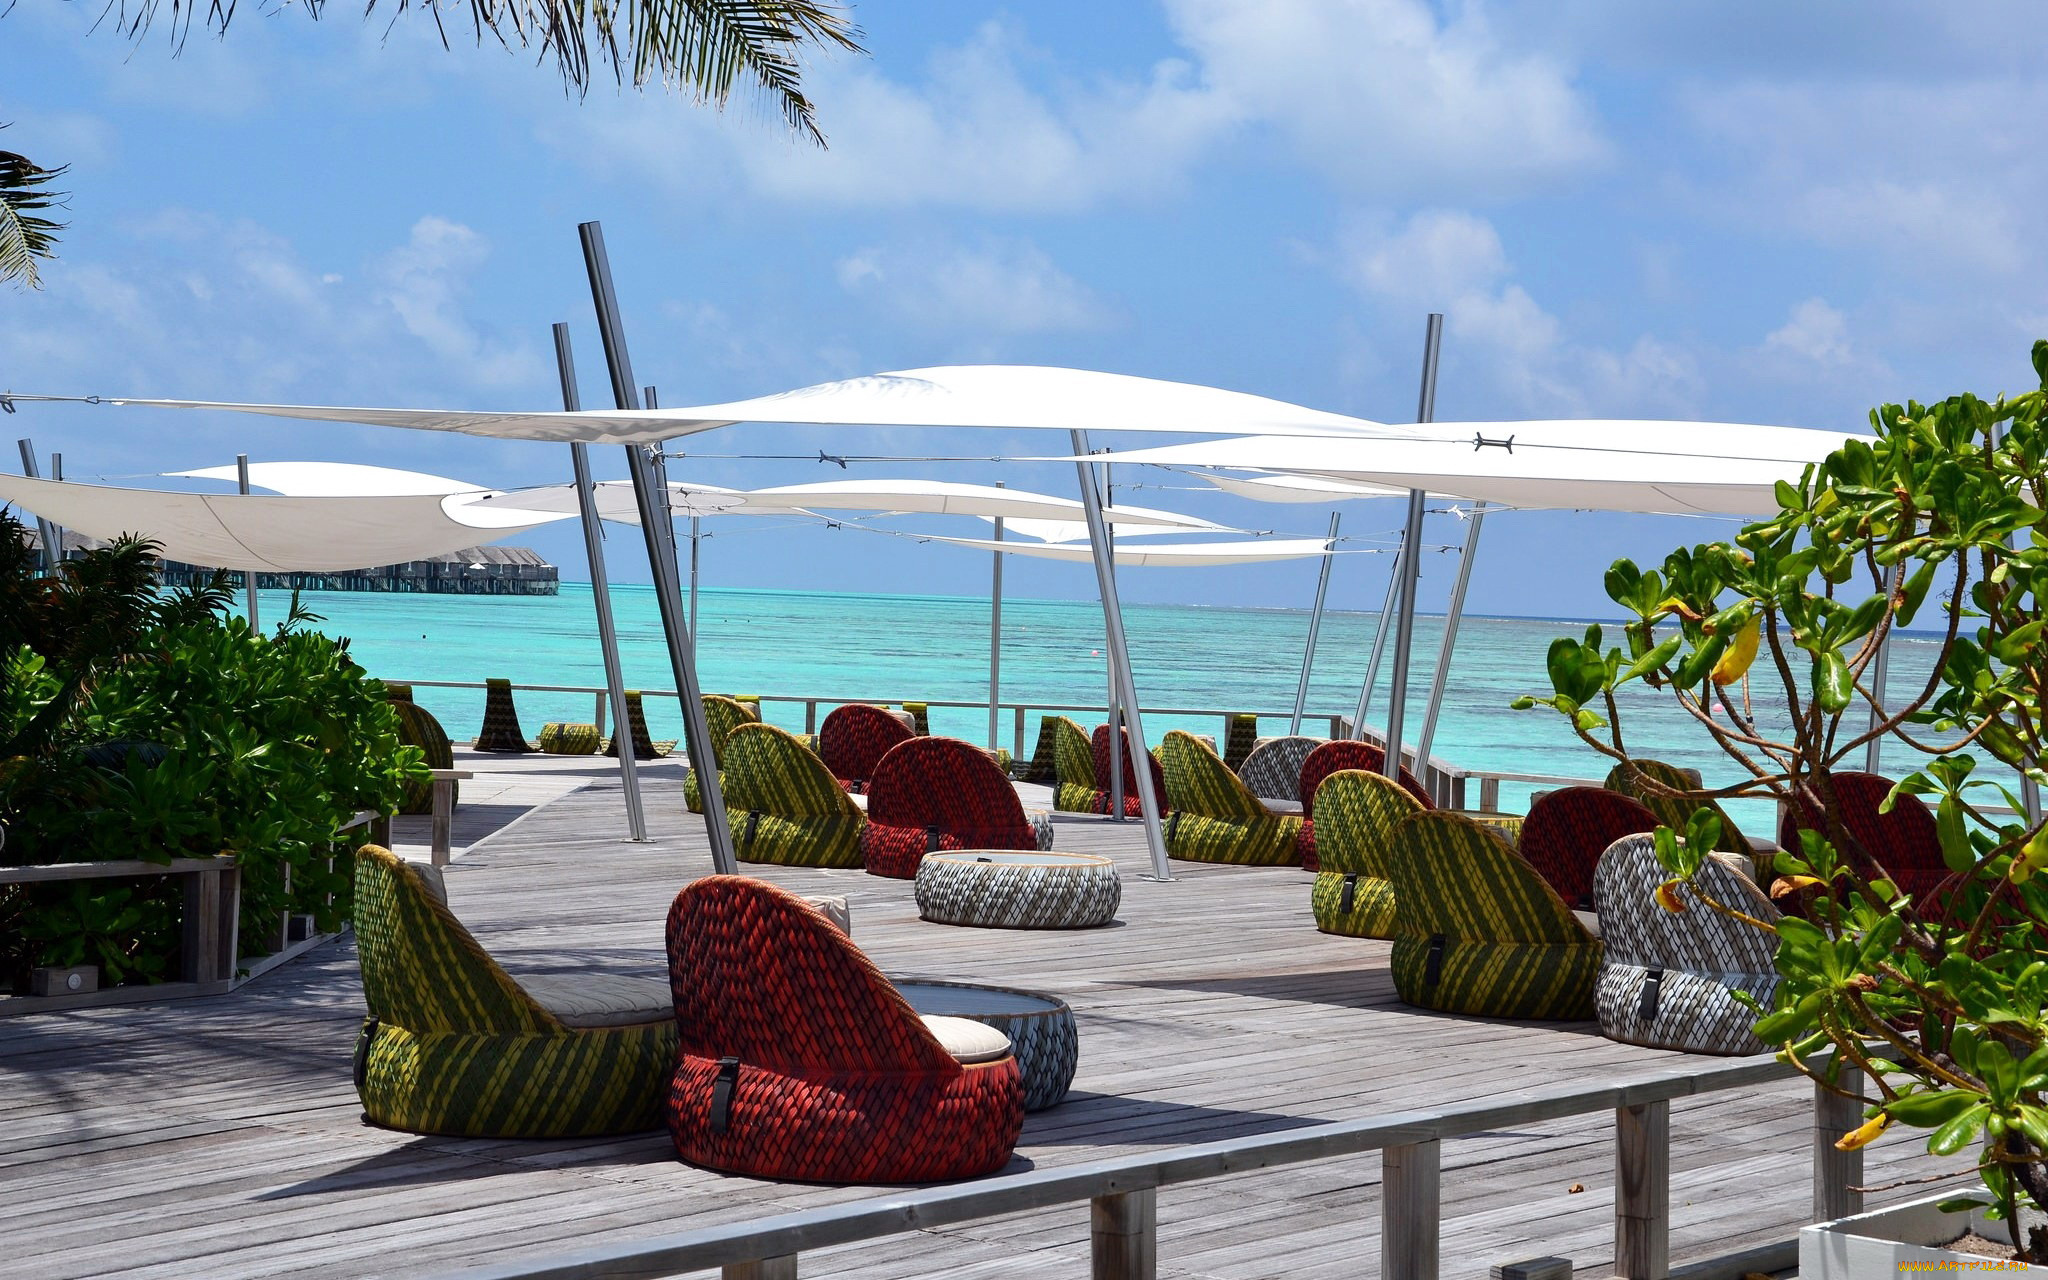 интерьер, веранды, , террасы, , балконы, maldives, valassaru, resort